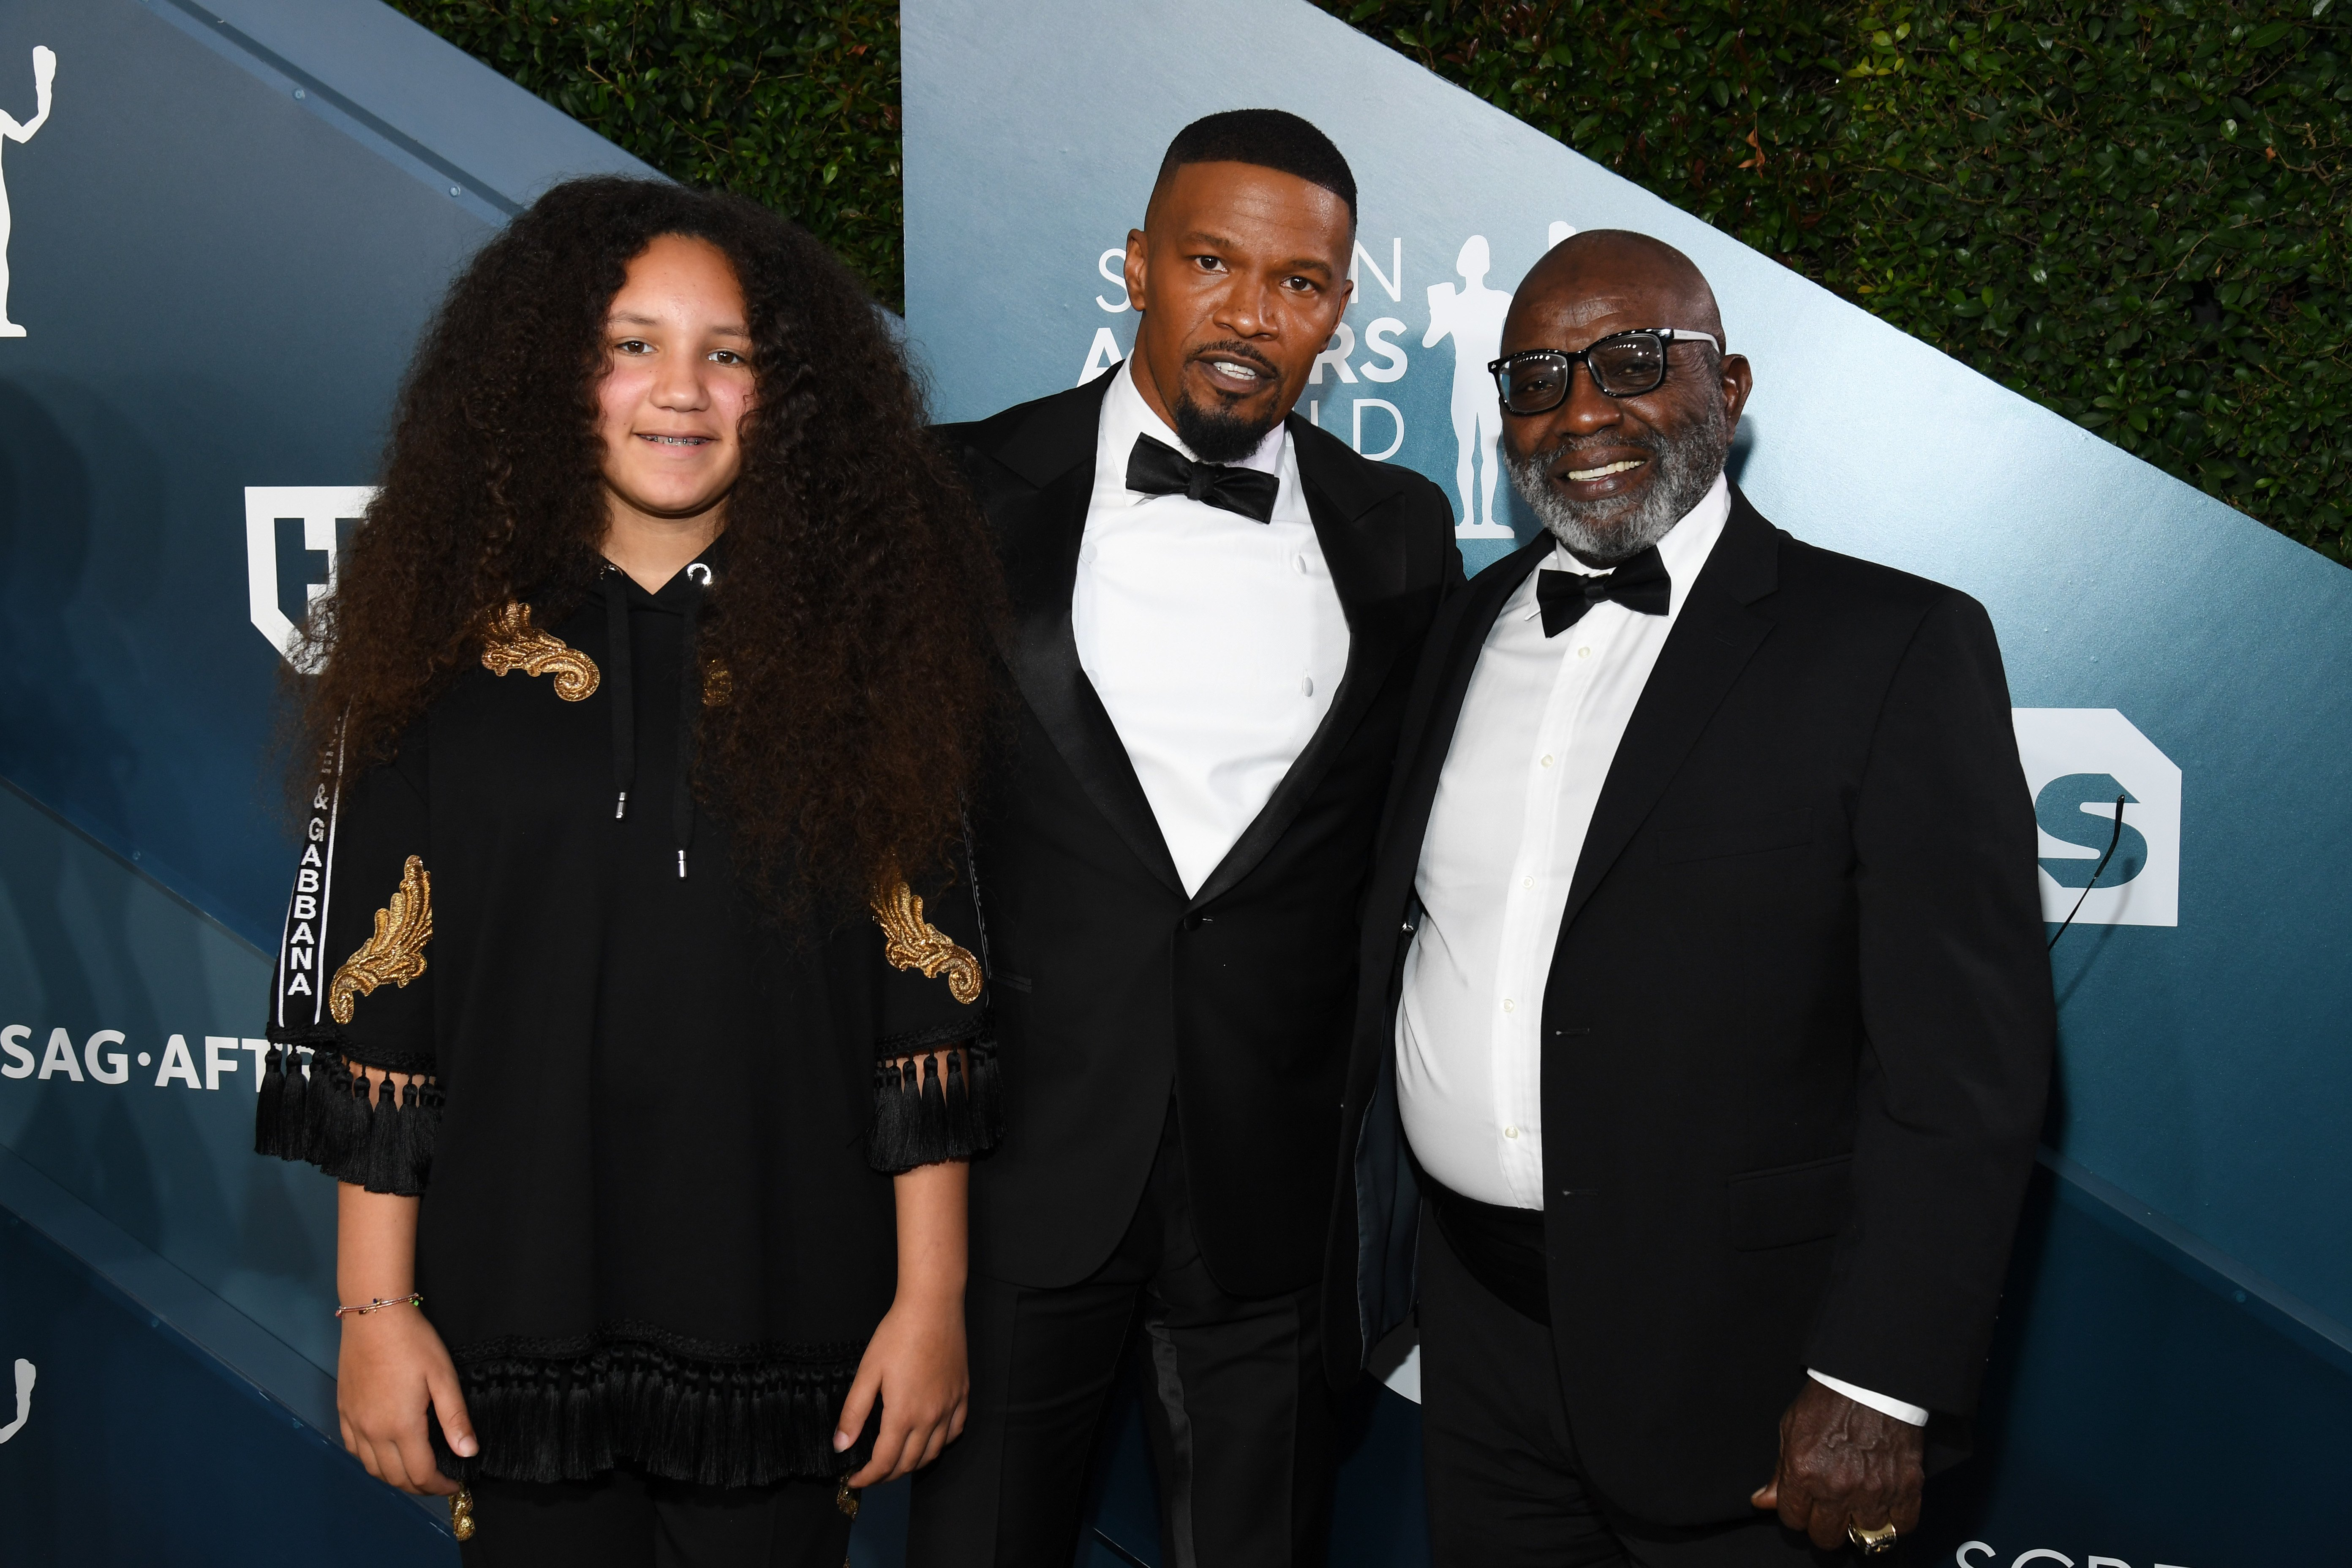 Annalise Bishop, Jamie Foxx and George Dixon attend the 26th Annual Screen Actors Guild Awards at The Shrine Auditorium on January 19, 2020 in Los Angeles, California.  | Photo: GettyImages